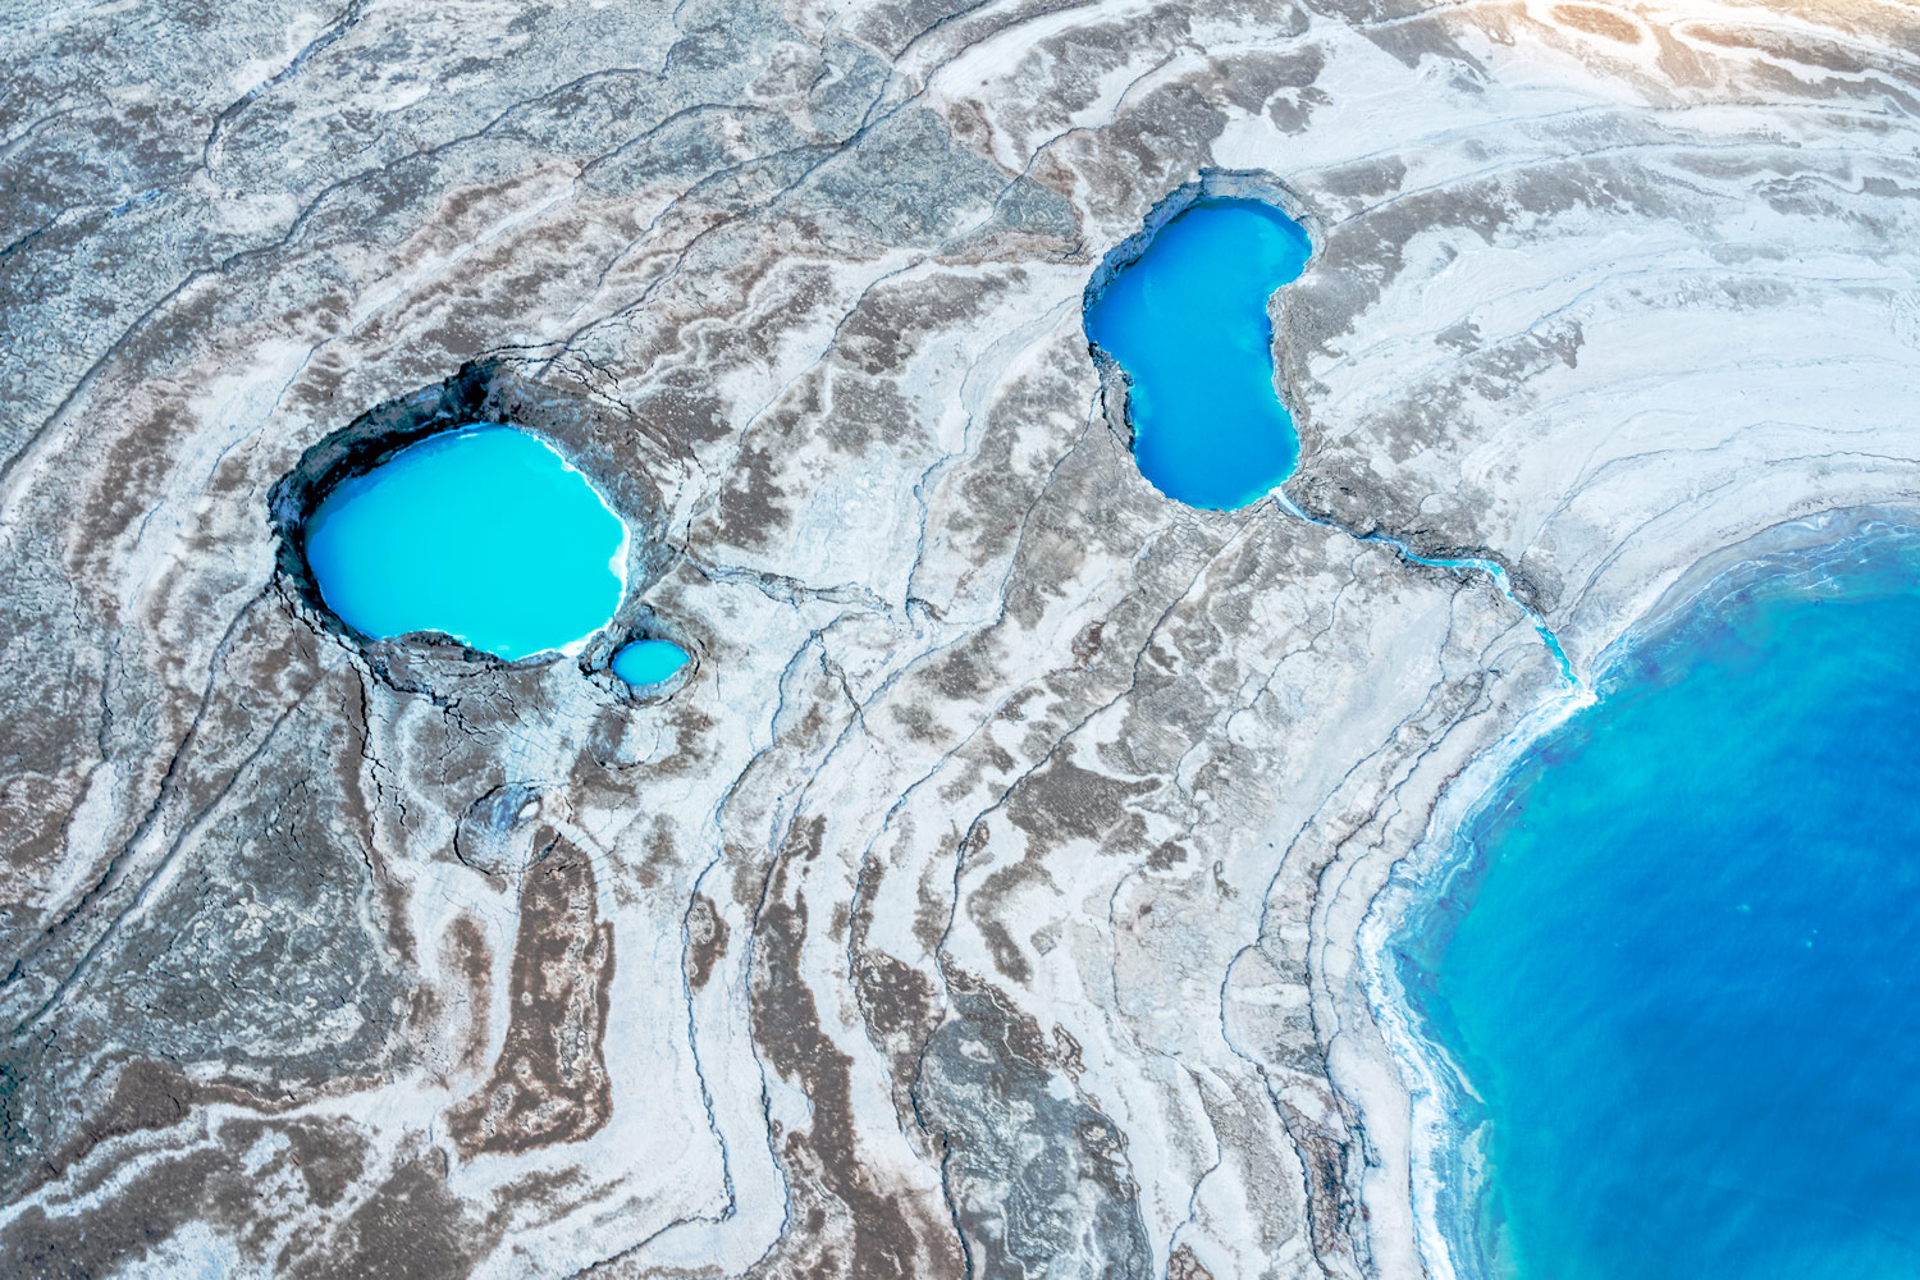 Moonlanding-Dead Sea Israel  Photograph from Helicopter by Dinesh Boaz